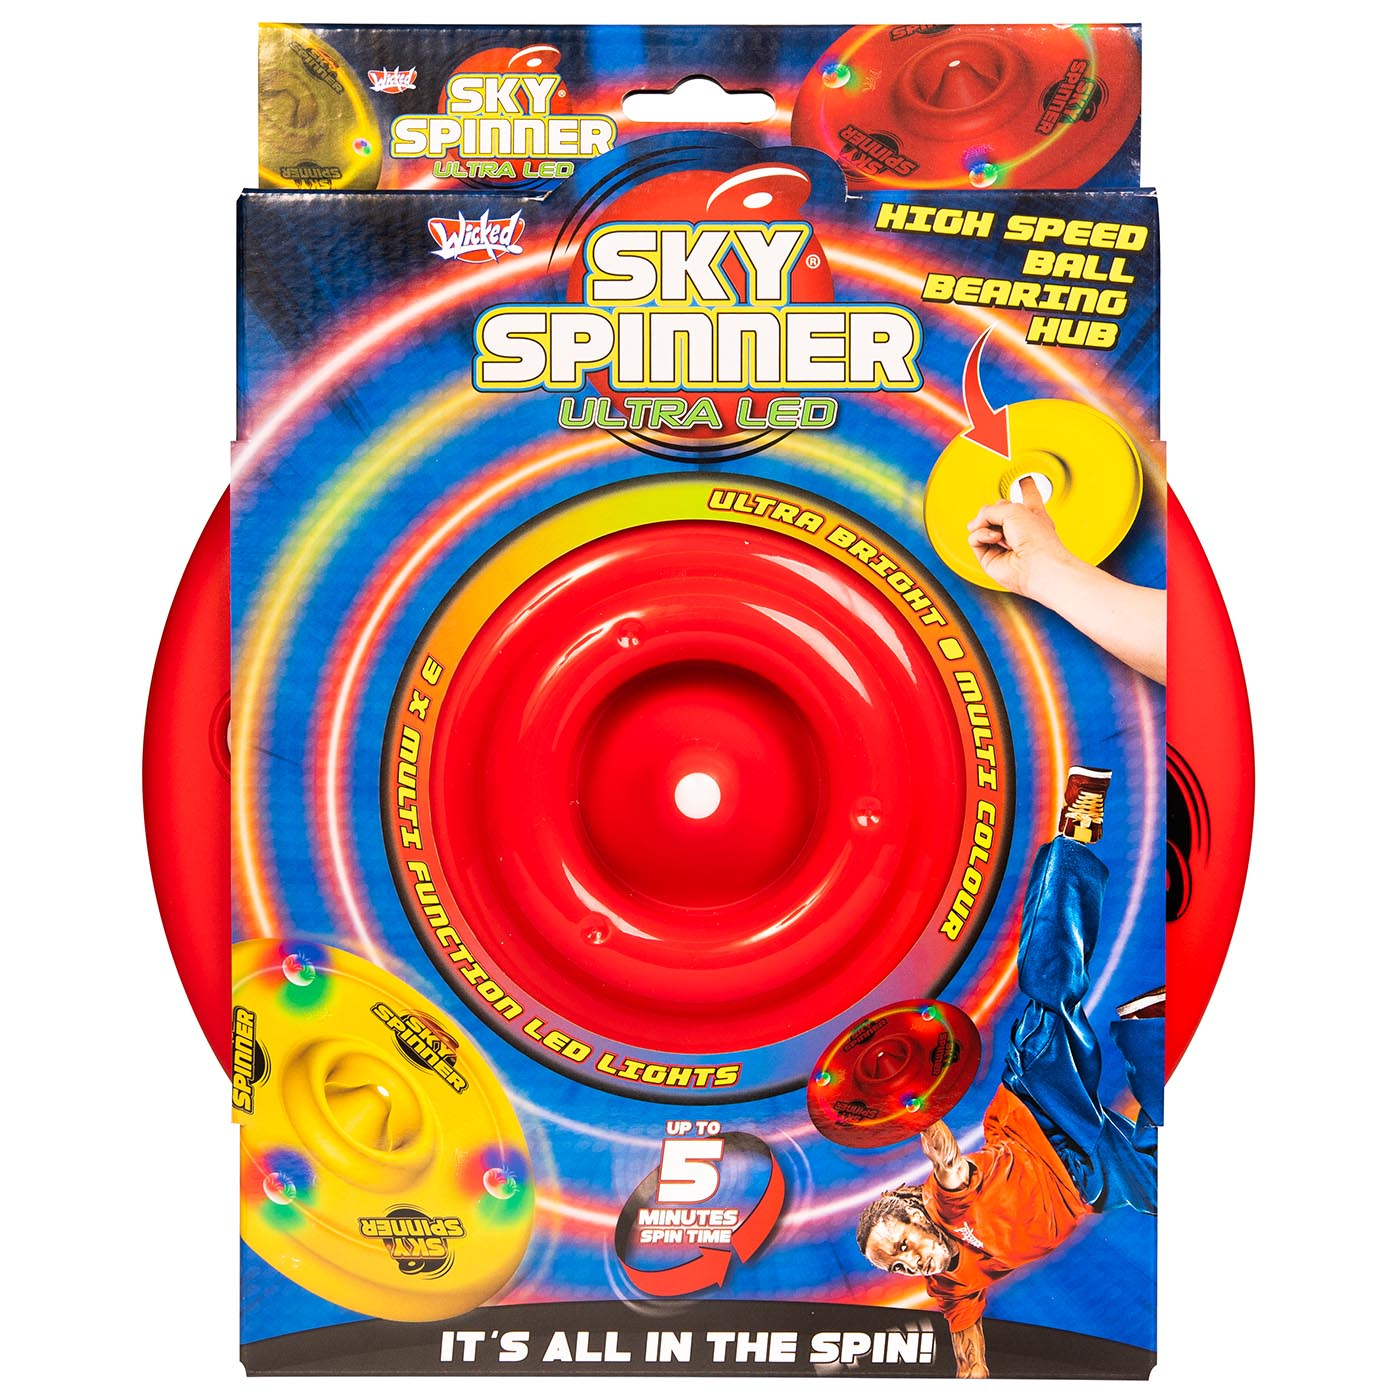 Wicked Sky Spinner Ultra LED Trick Disc - Red